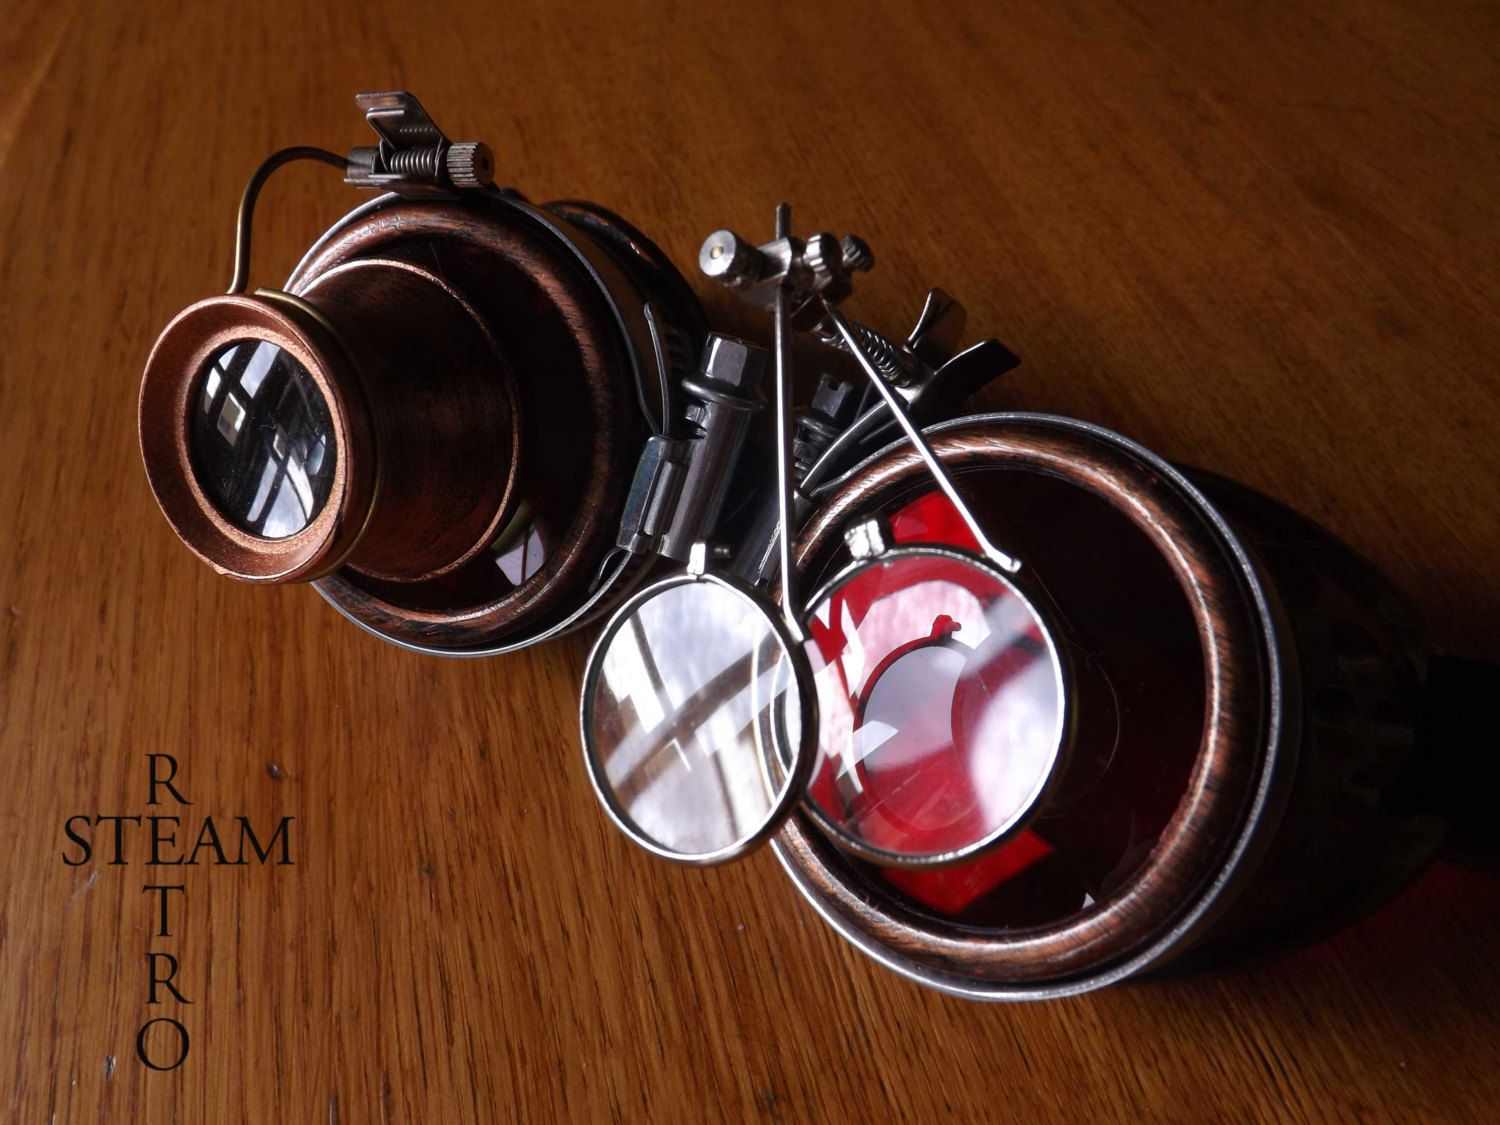 6dc237e57d8 10% off sale16 bronze steampunk goggles - double loupe red multi lens cyber  goggles burning man steampunk accessories - steampunk gift by SteamRetro on  Etsy